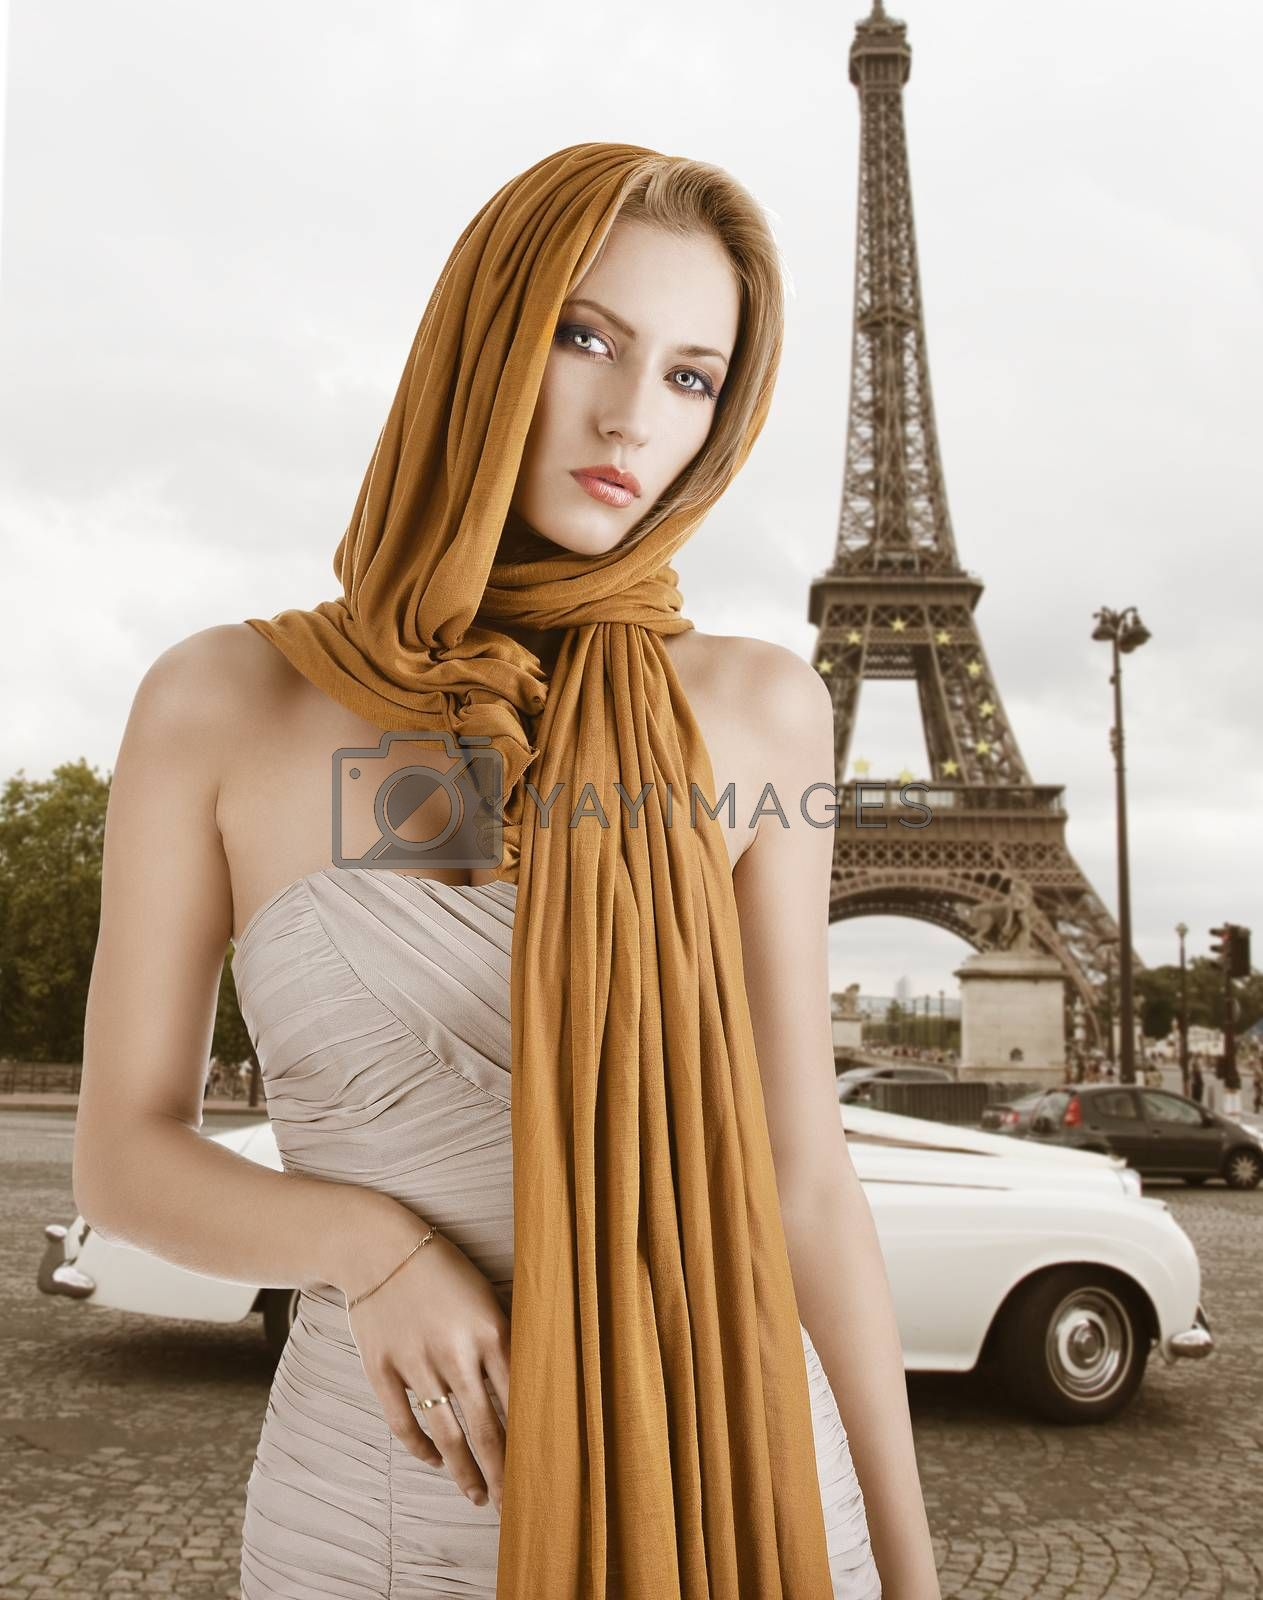 Royalty free image of blond girl in elegant dress, she has the scarf on the head by fotoCD